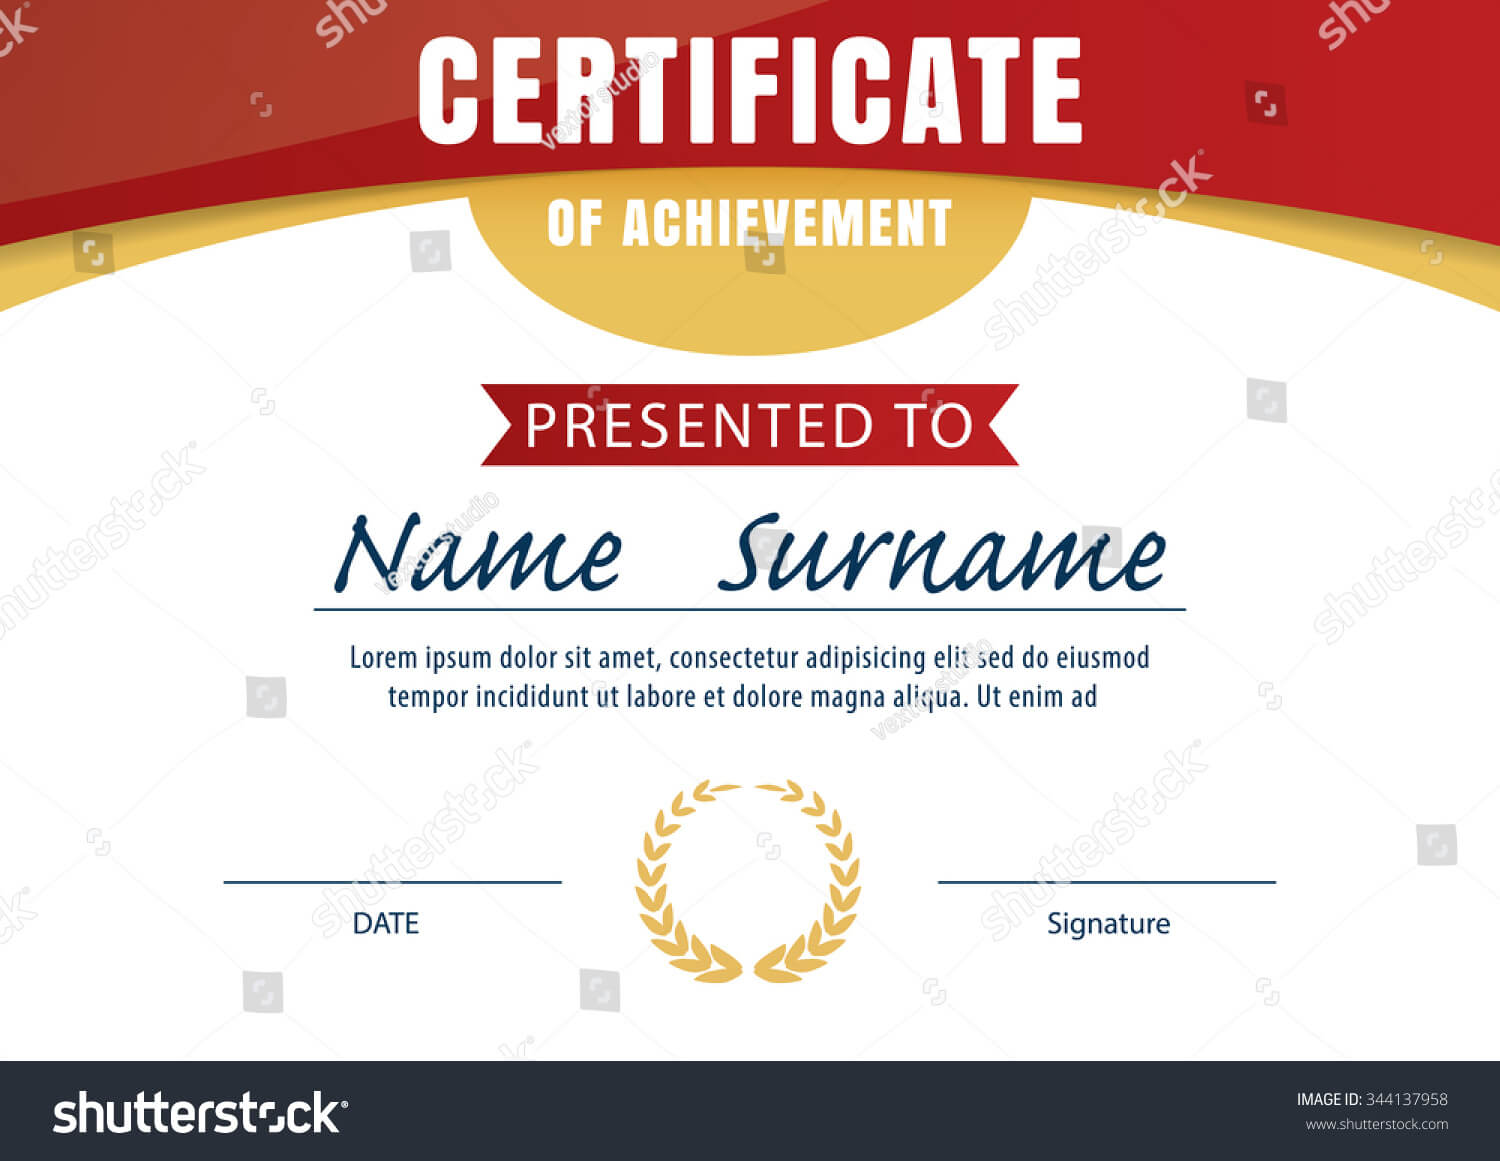 Certificate Template Diploma Layout A4 Size Stock Image Within Certificate Template Size